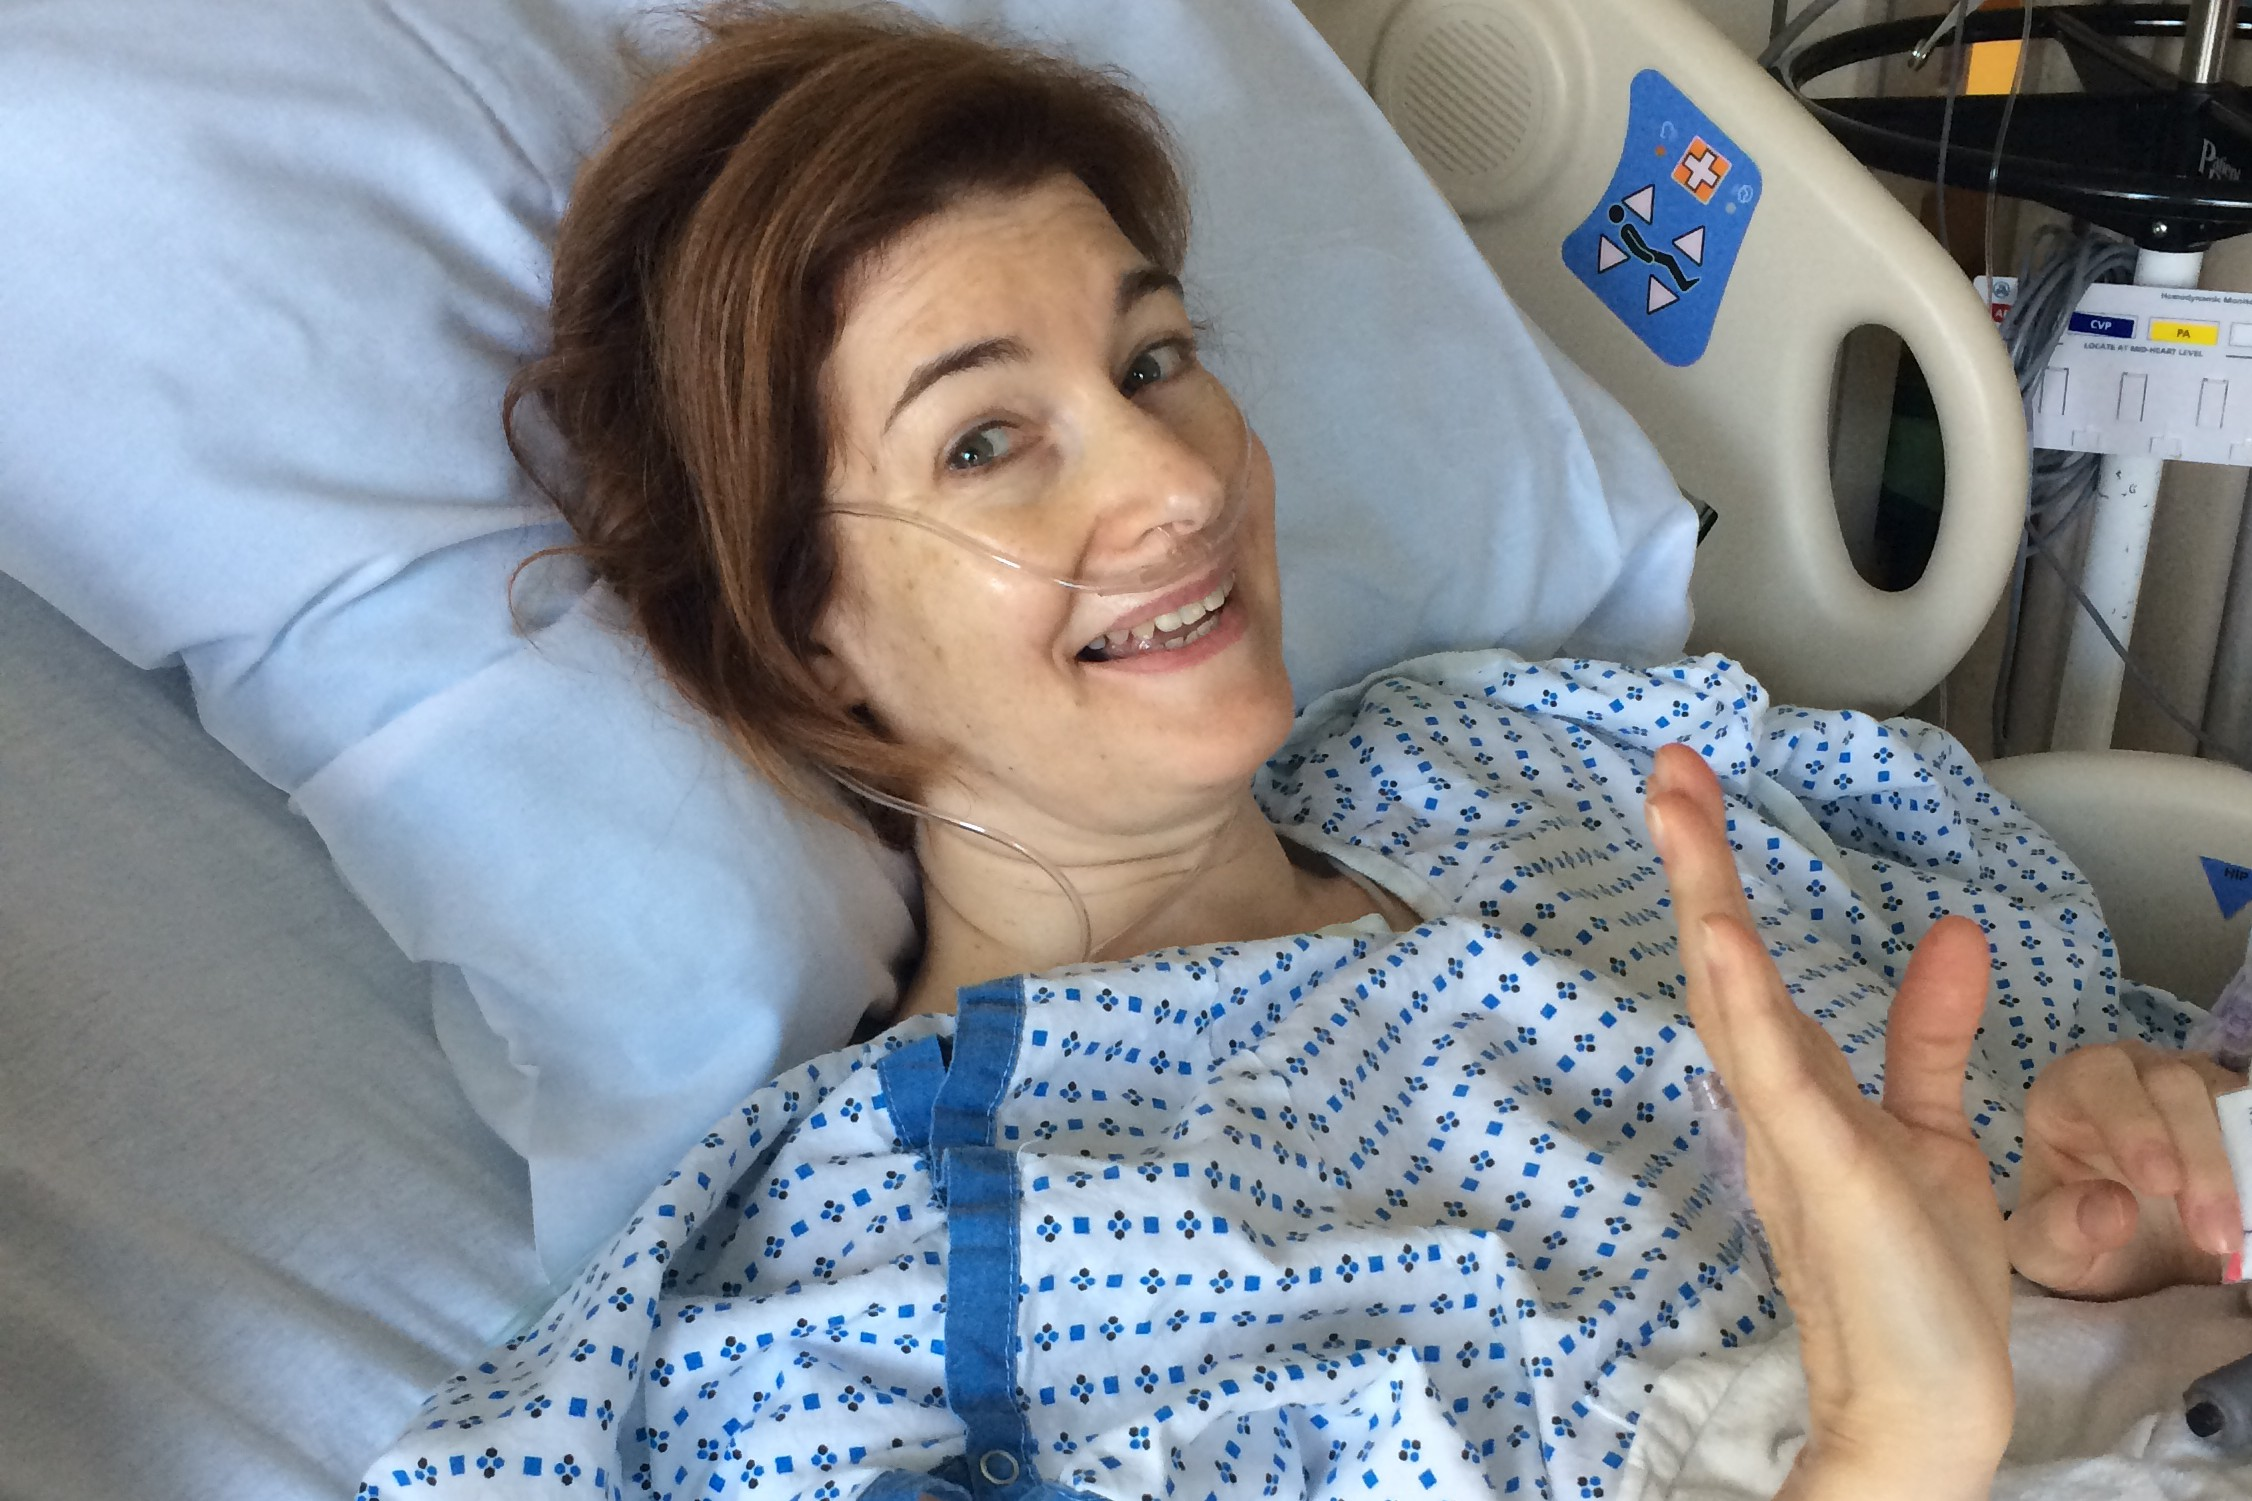 Roma Torre Doing Well After Colon Cancer Surgery